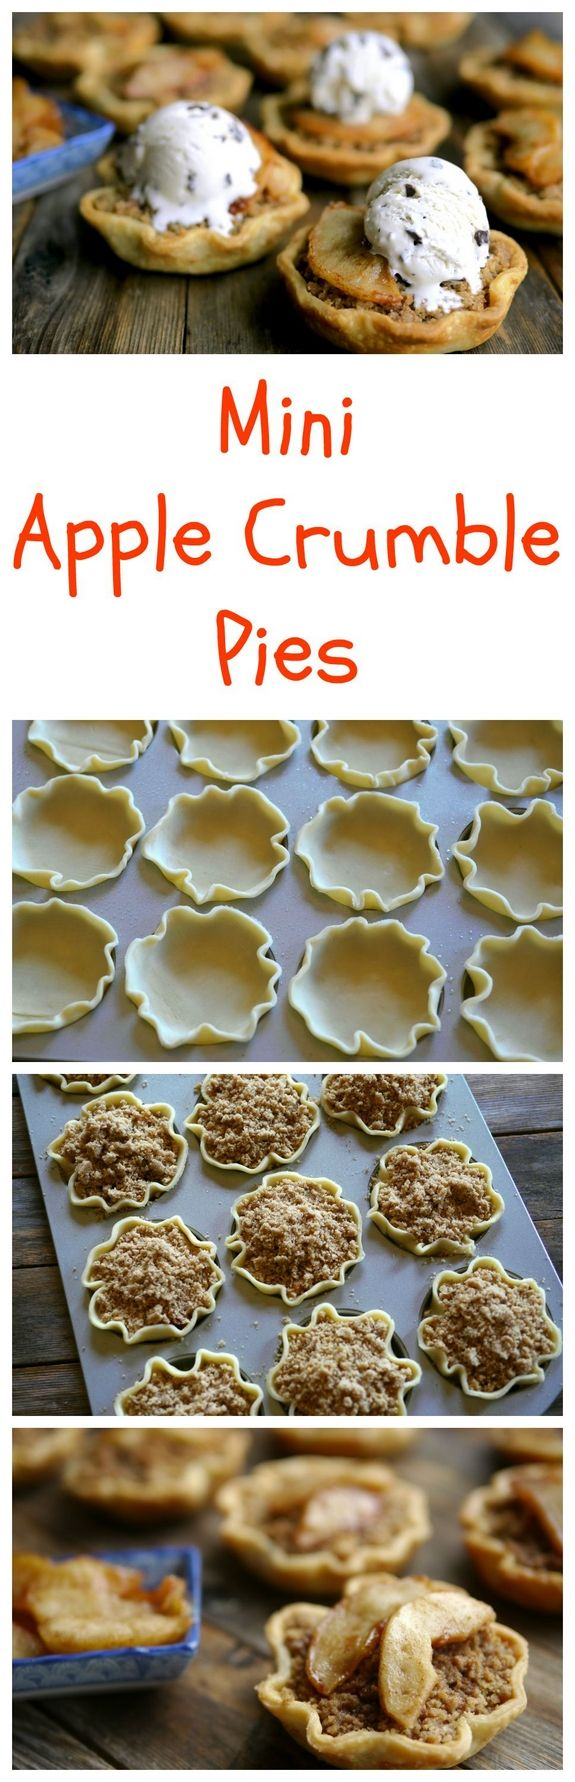 Mini Apple Crumble Pies from NoblePig.com. Pie skills are NOT necessary for this adorable dessert. The individual pies are sized perfectly to enjoy after a big meal. Great for the Fall, Thanksgiving or any holiday celebration.